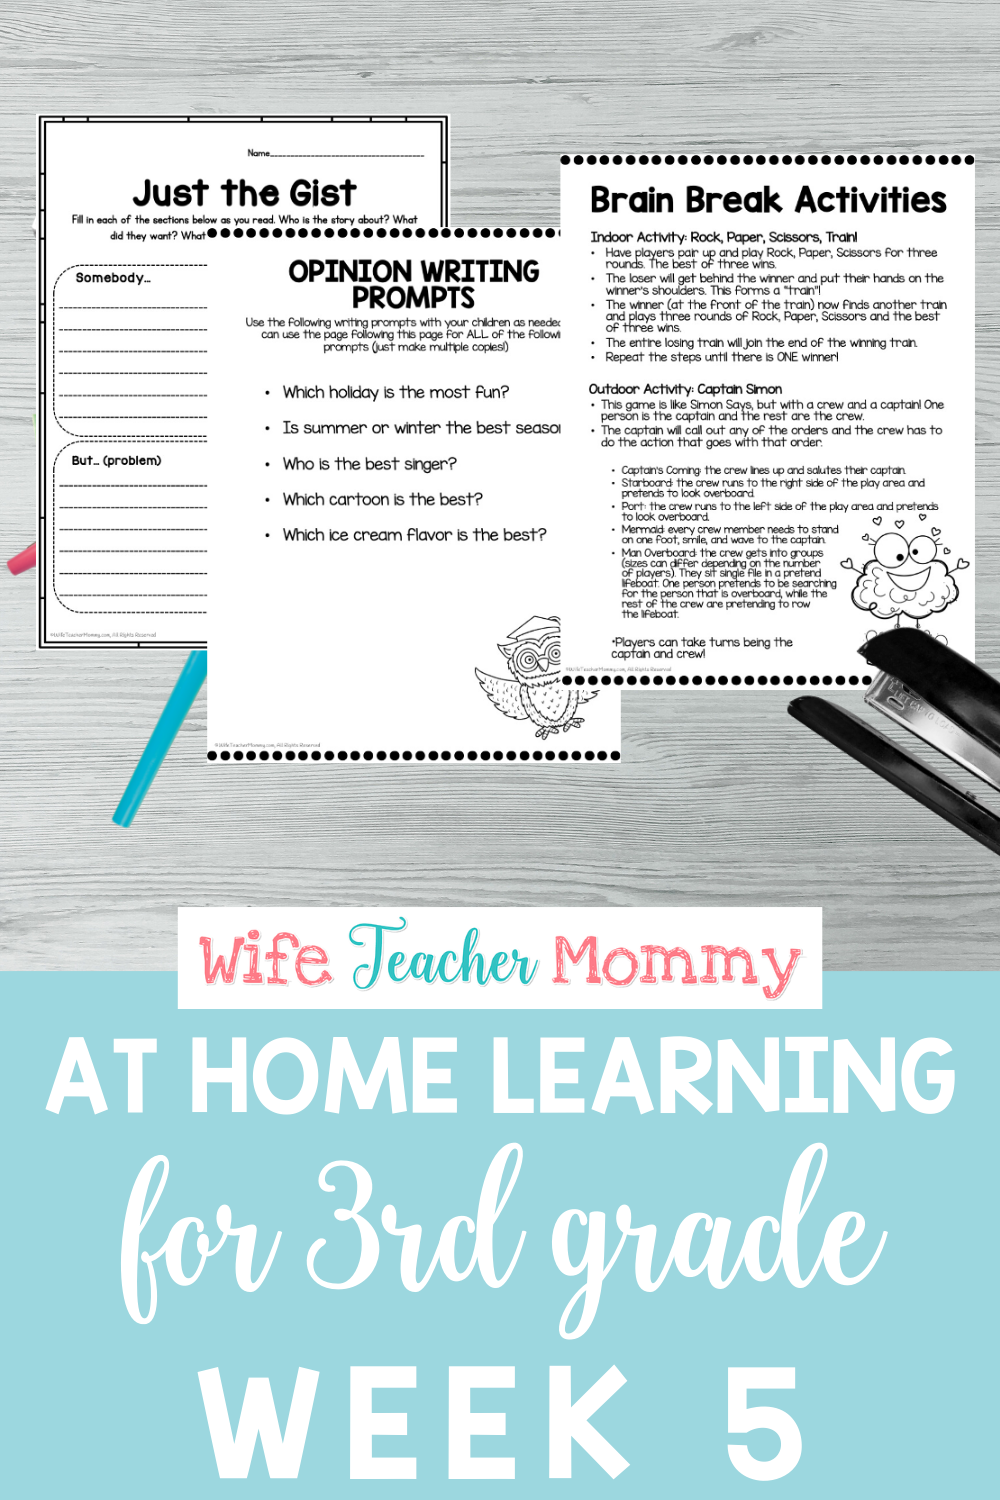 3rd Grade Distance Learning Packet At Home Learning Activities Week 5 Teacher Time Savers Opinion Writing Lessons Read To Self [ 1500 x 1000 Pixel ]